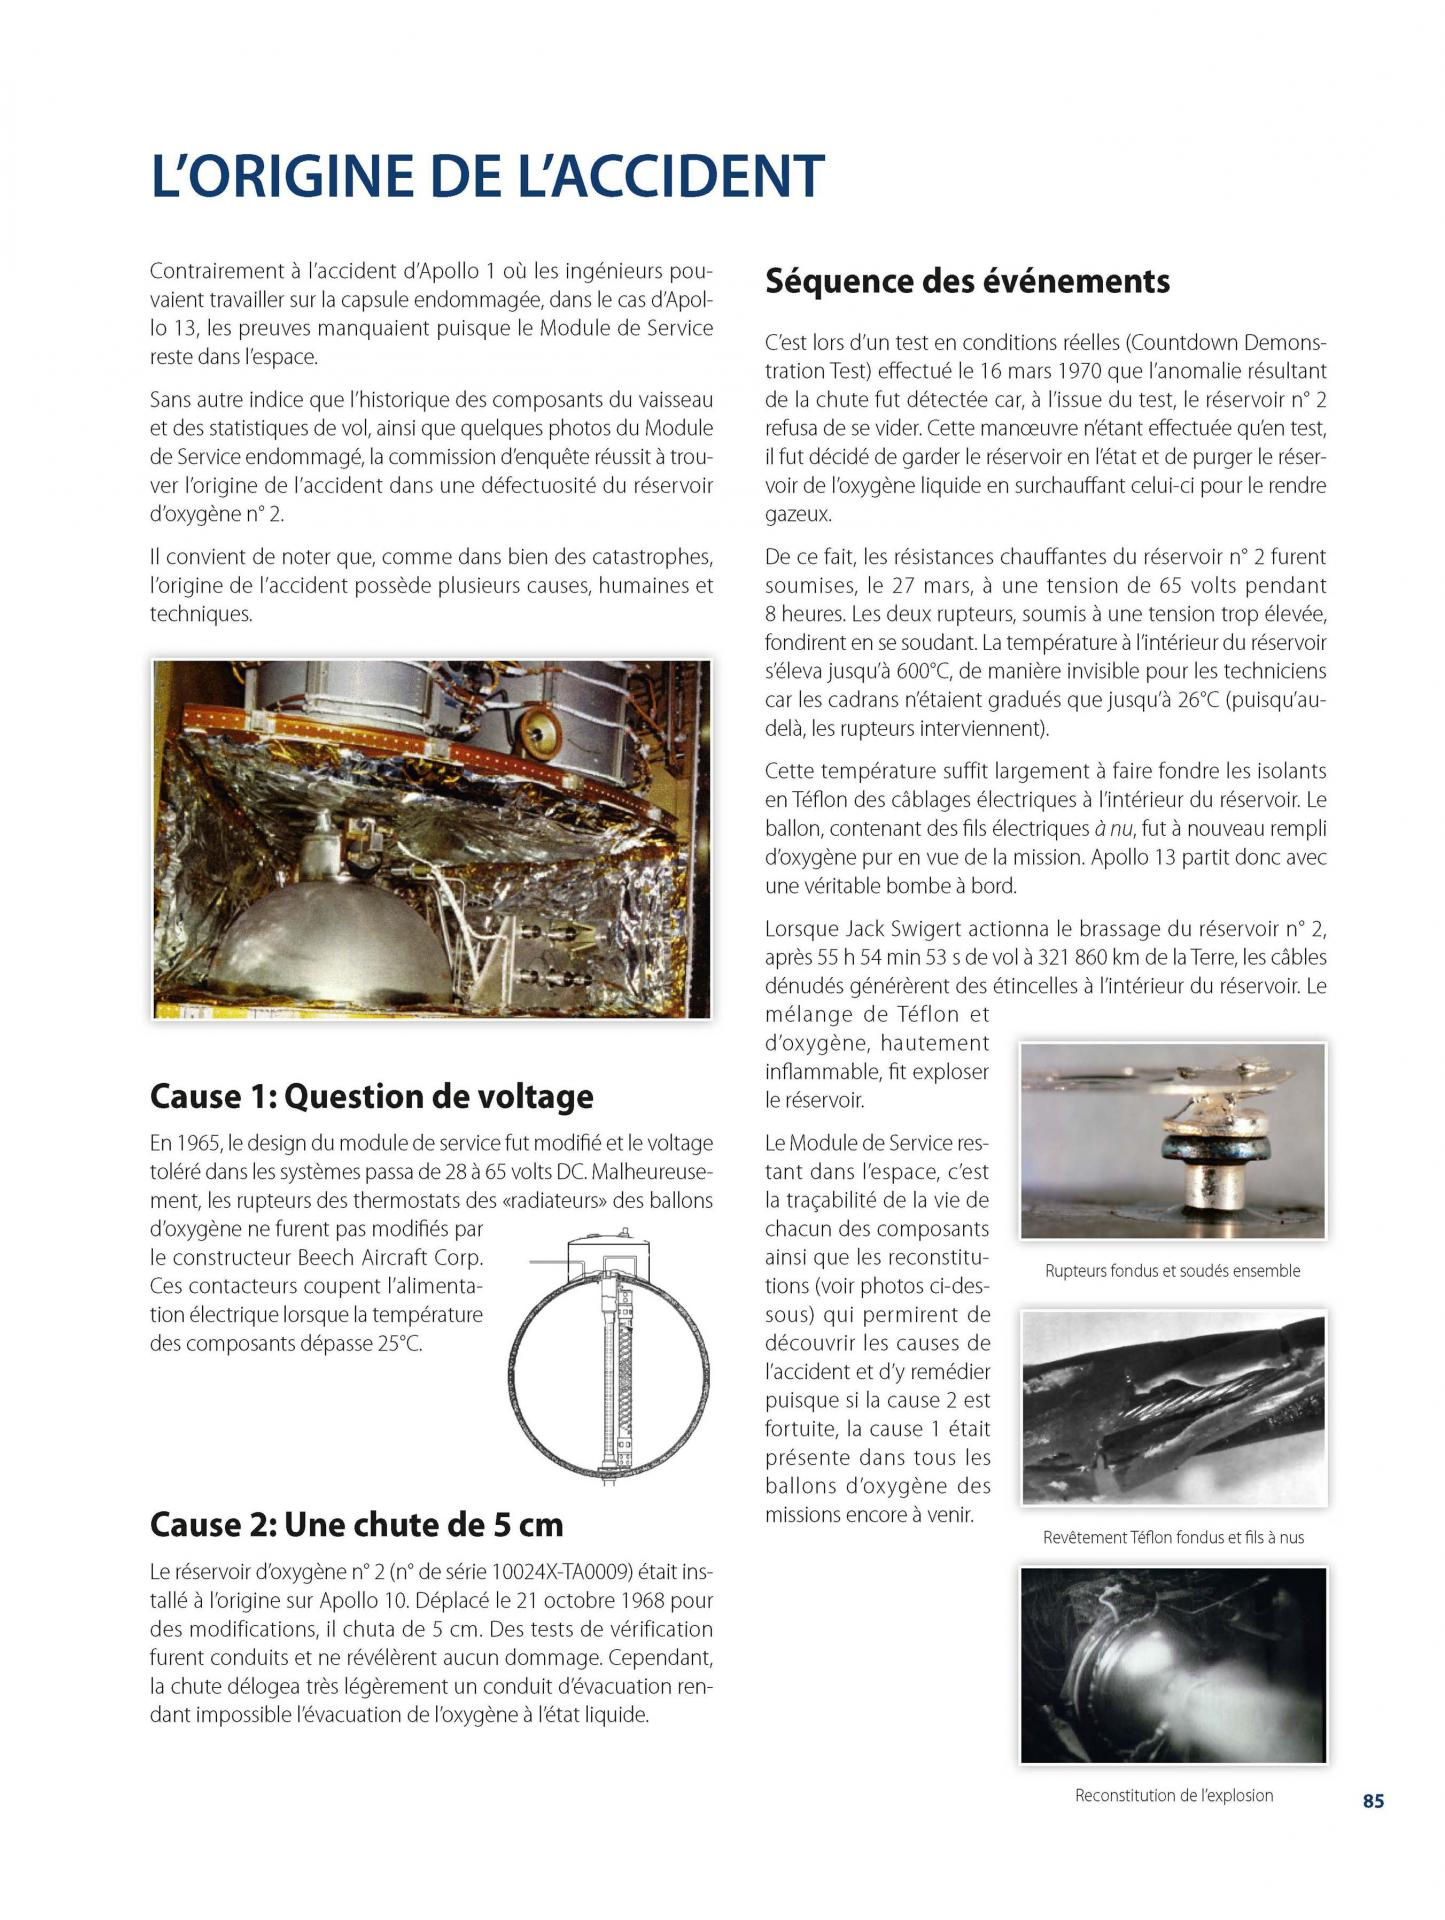 A13 FR - Page 85 - Cahier Technique